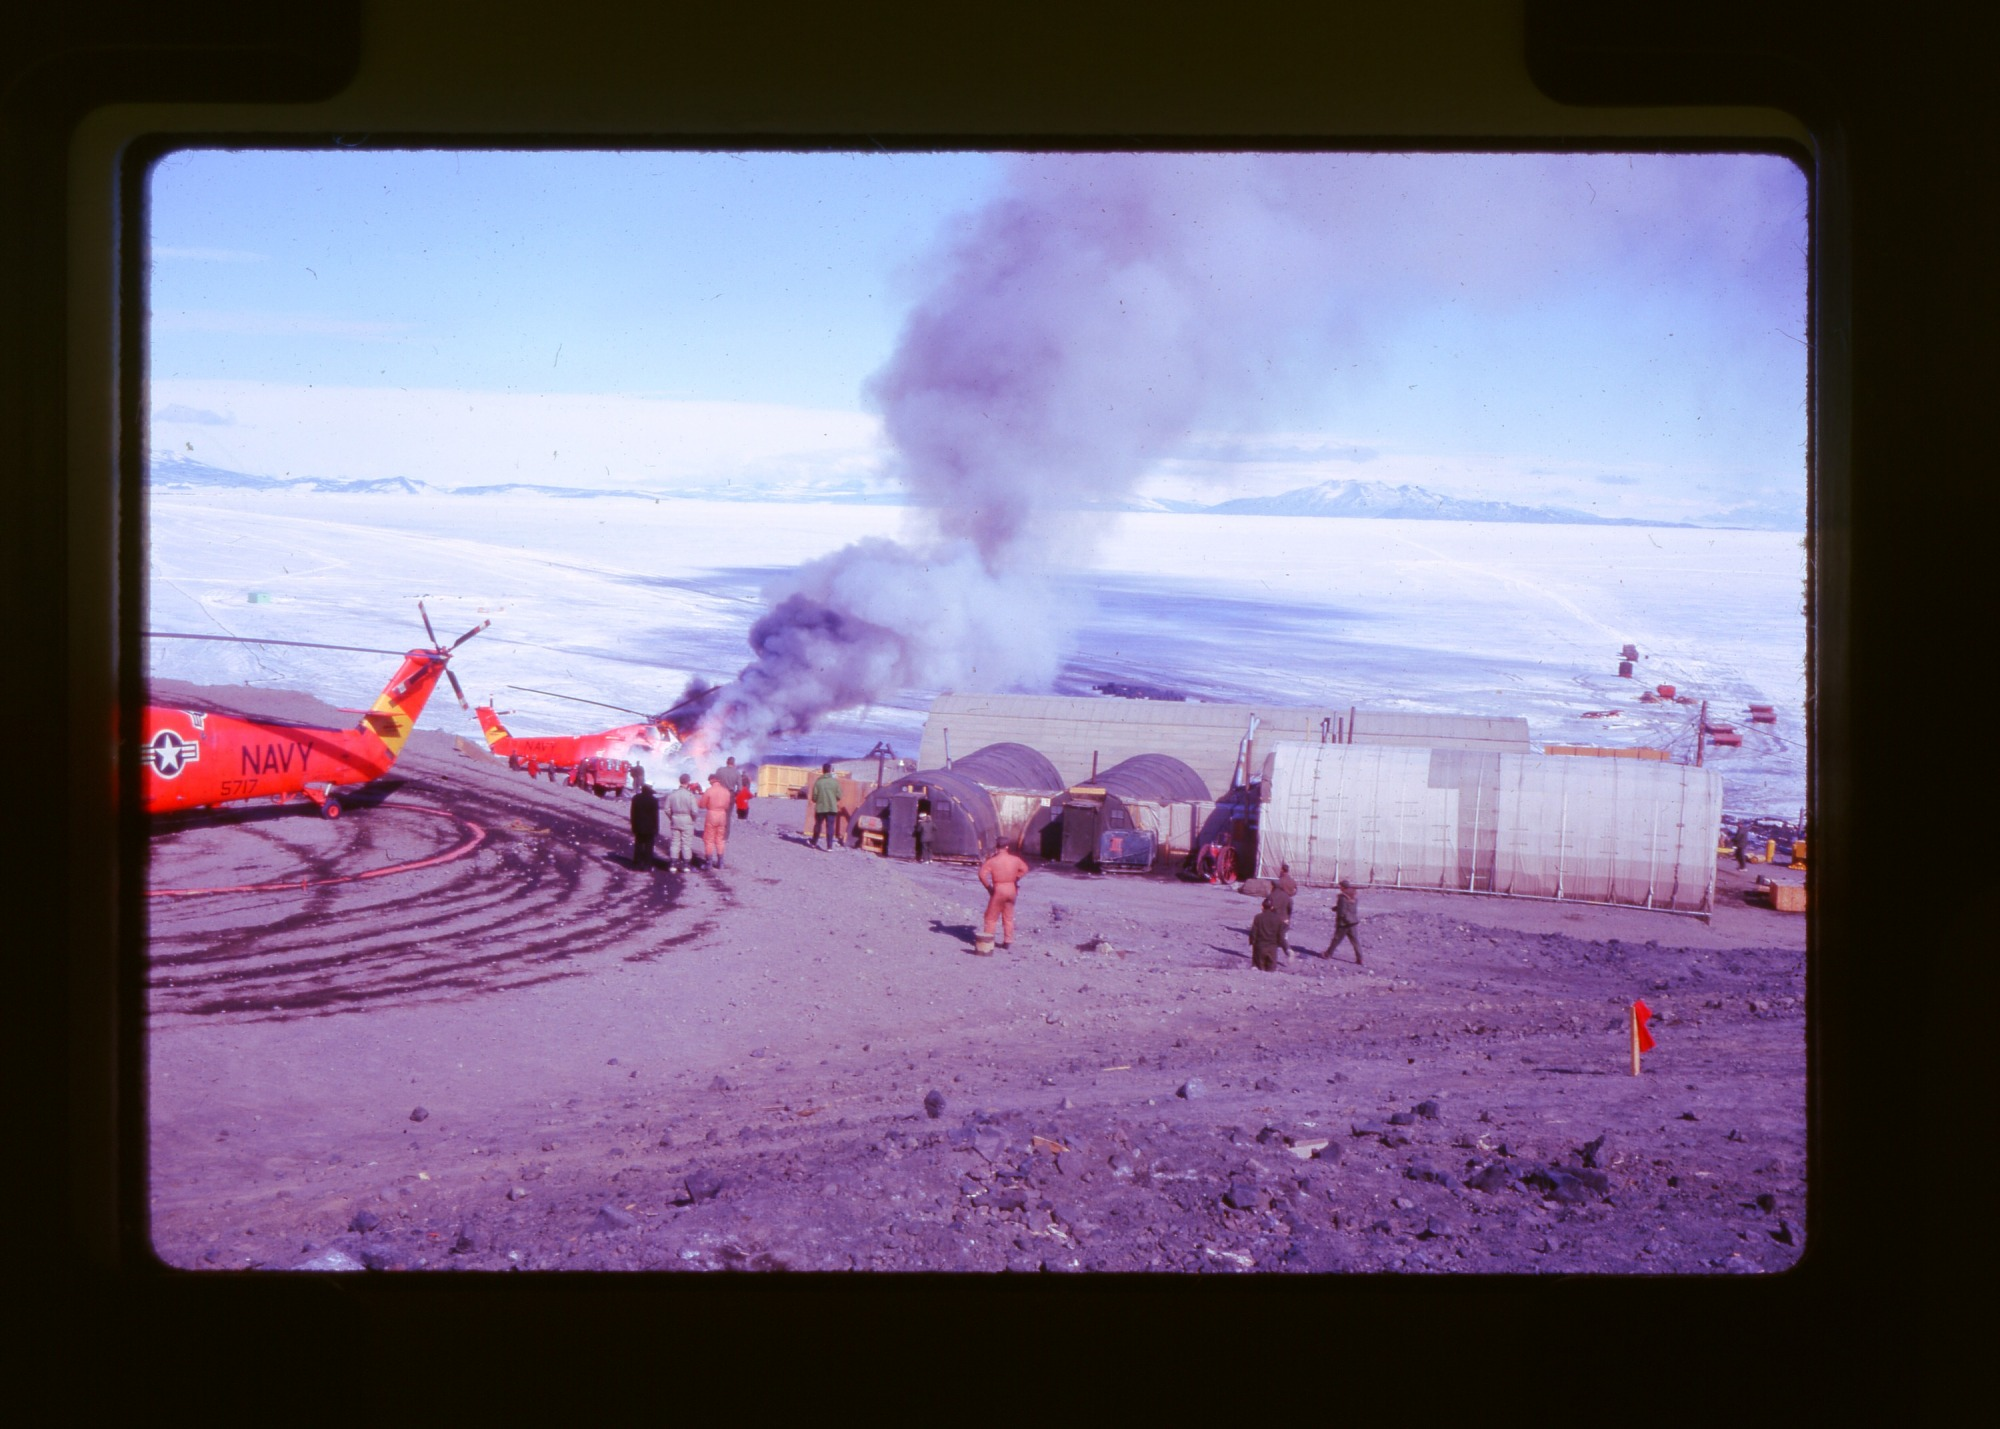 Helicopter fire on McMurdo Base, Antarctica, prior to arrival of emergency response team